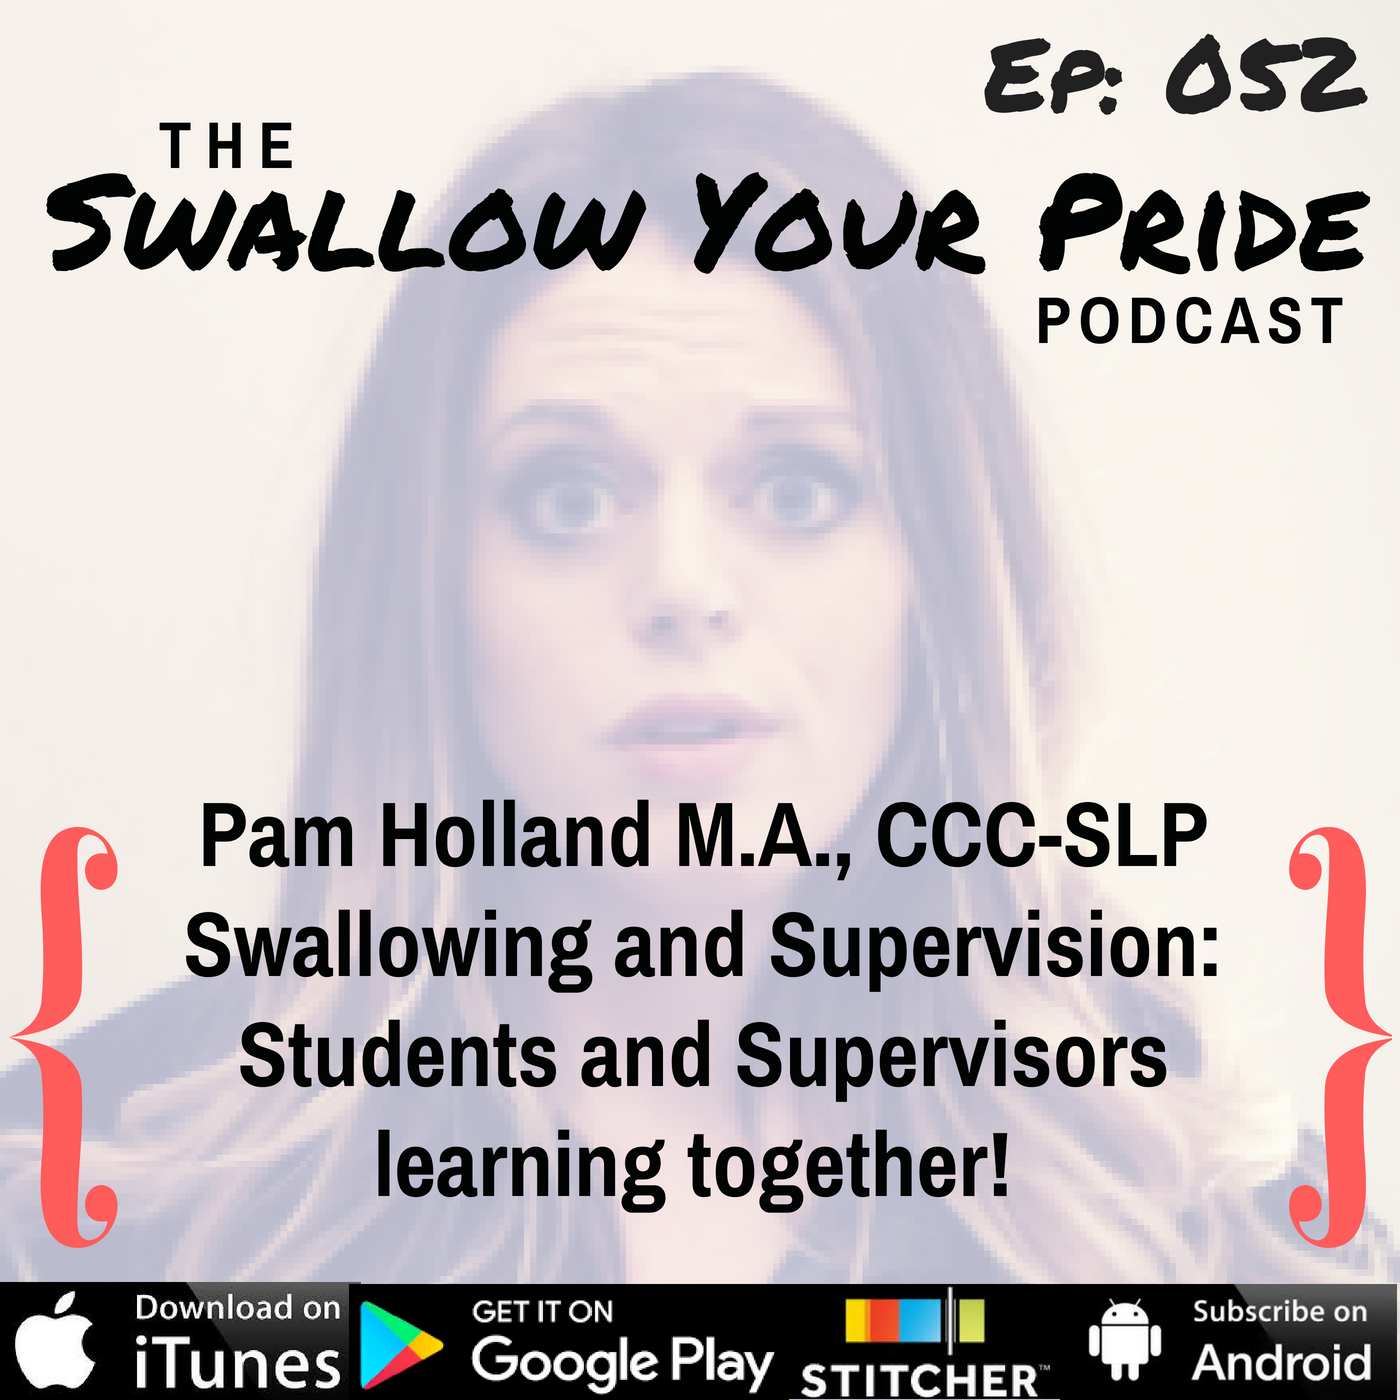 052 – Pam Holland M.A., CCC-SLP – Swallowing and Supervision: Students and Supervisors learning together!